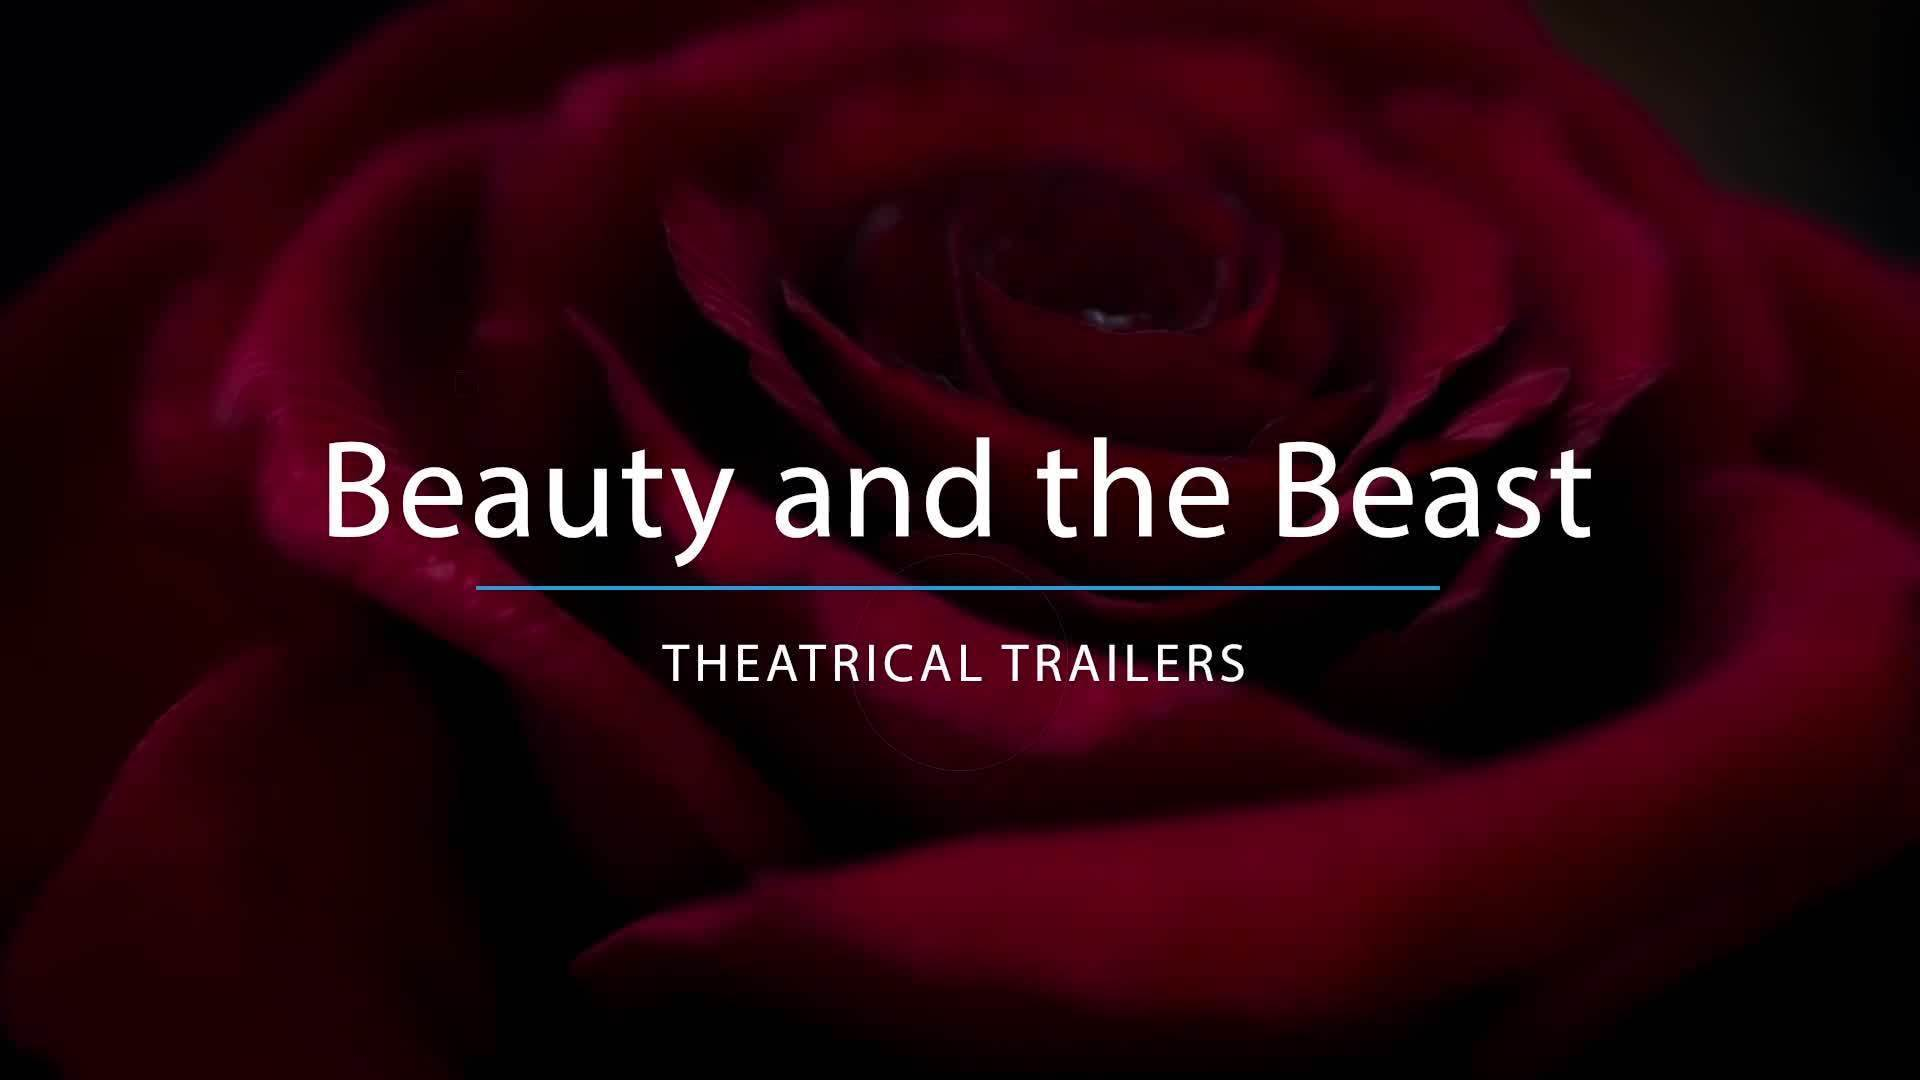 Beauty And The Beast: Theatrical Trailers